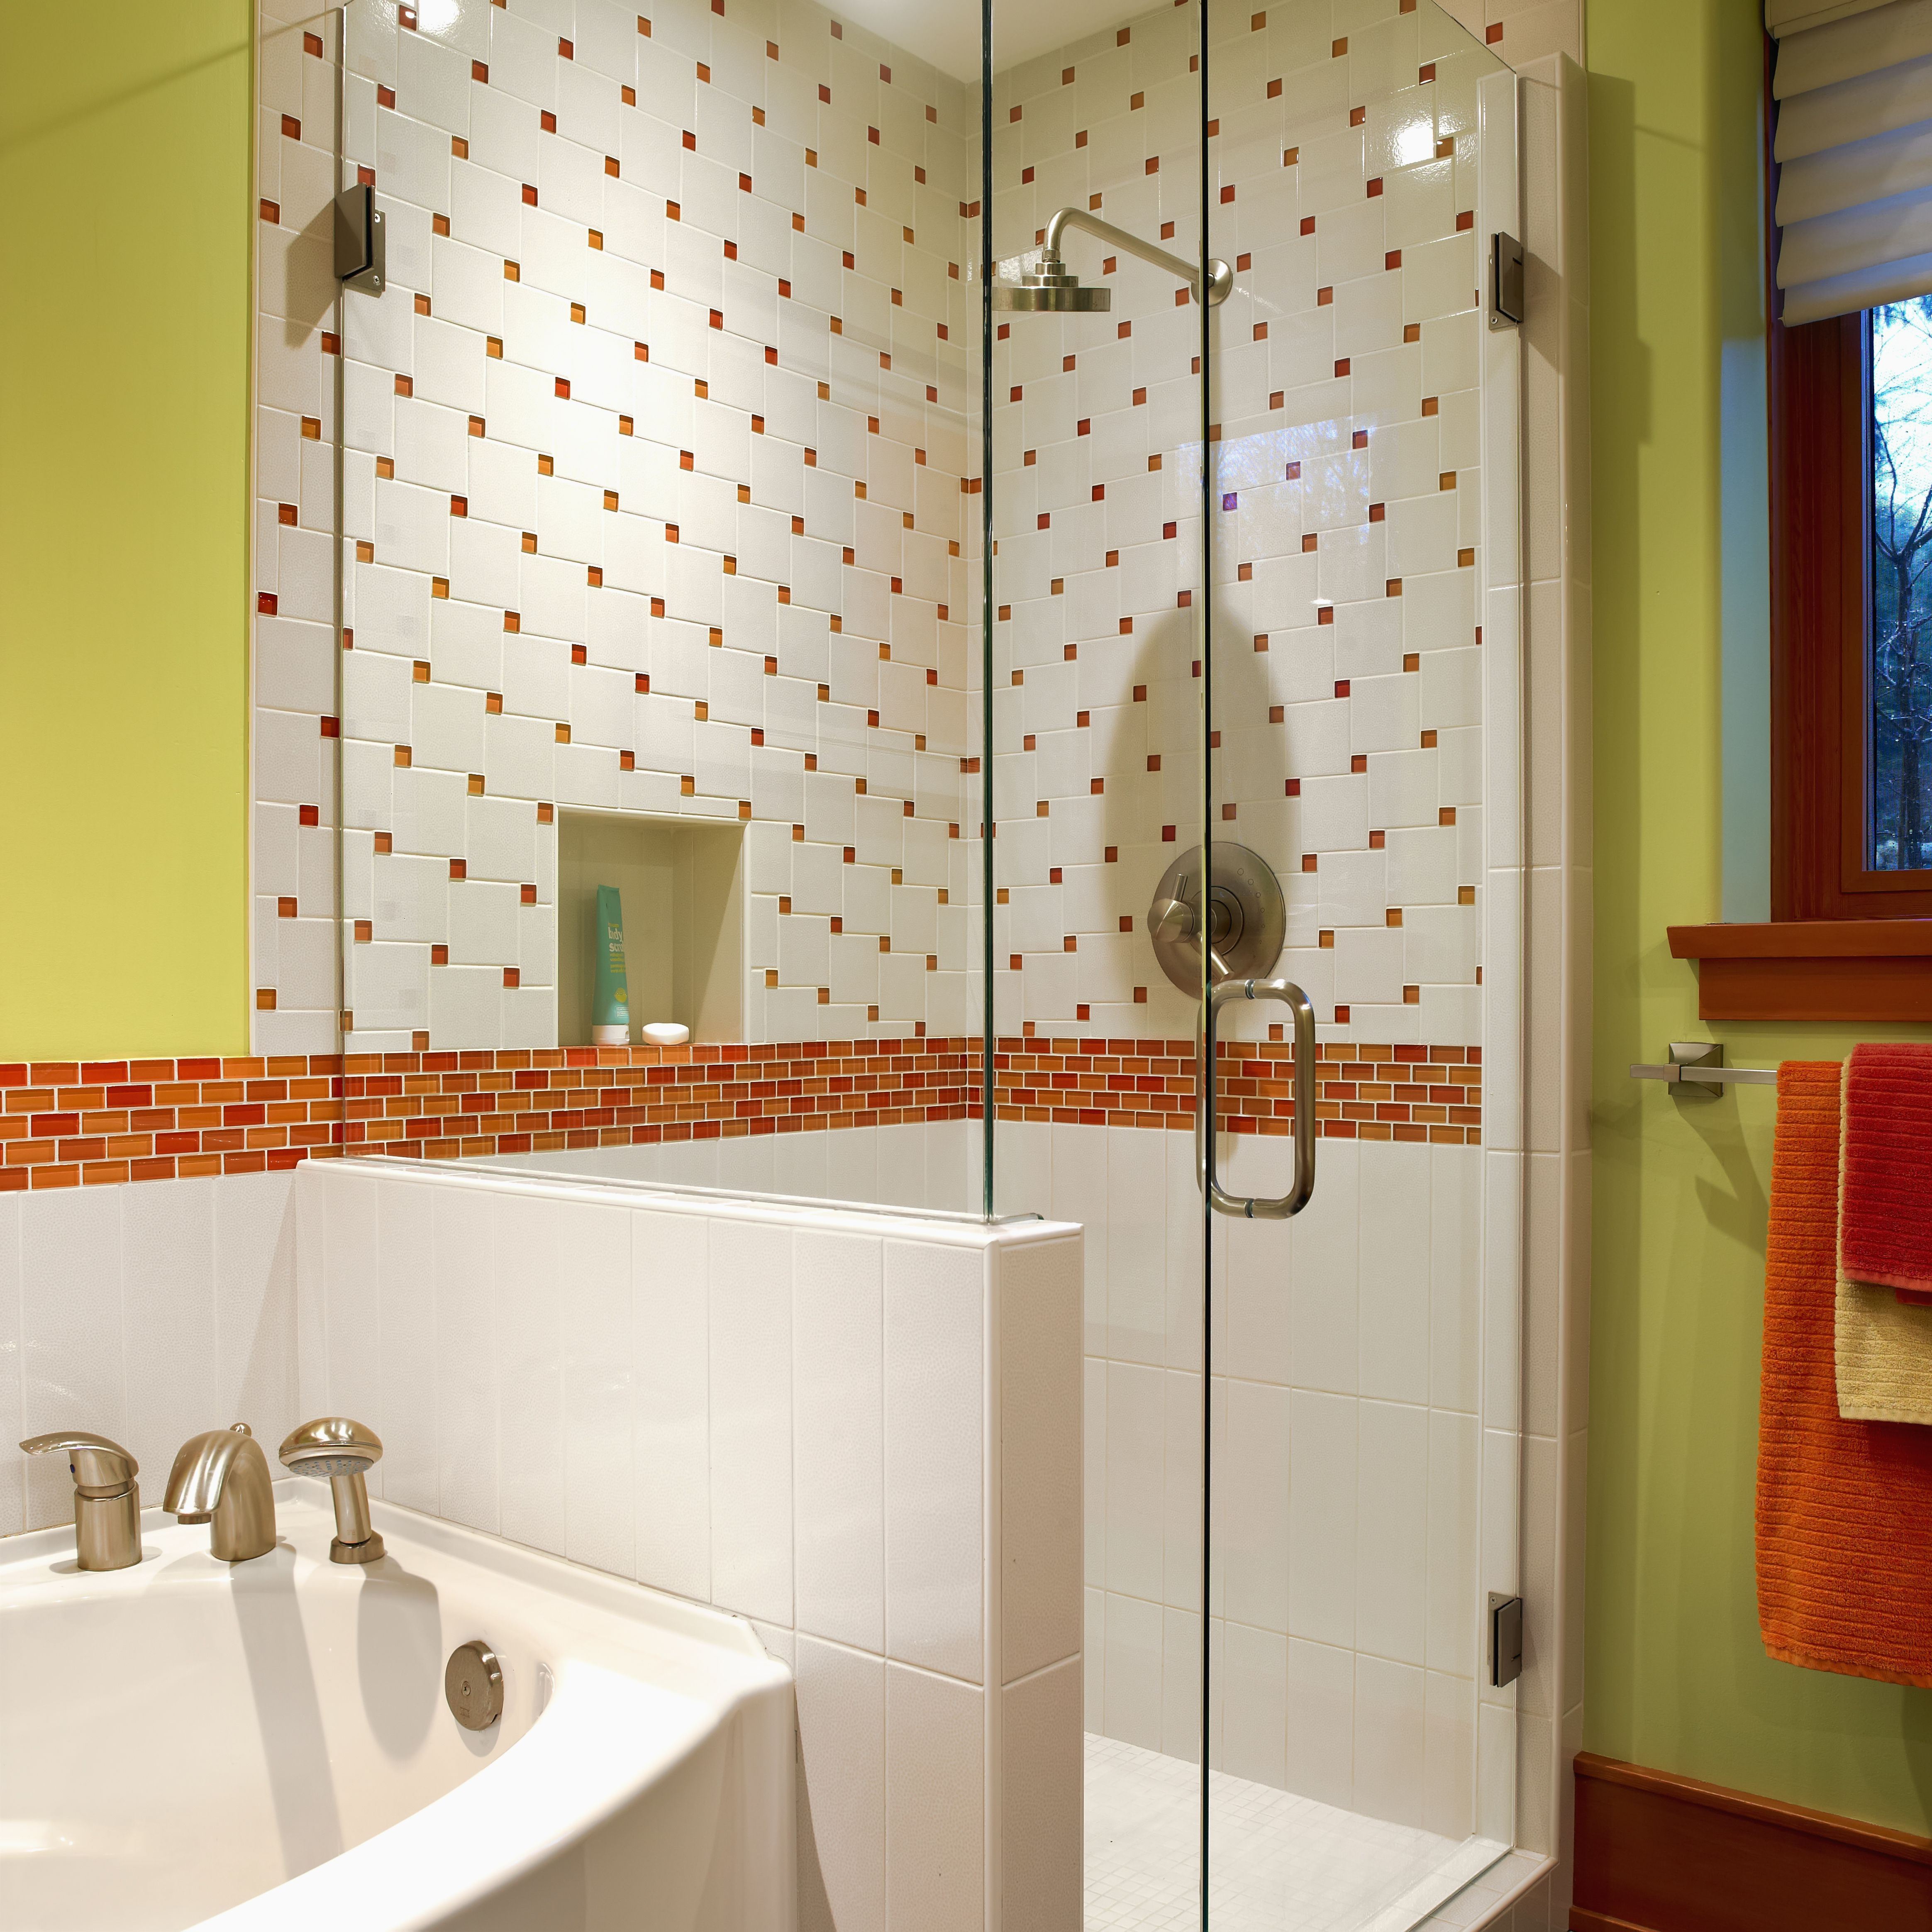 gallery bathroom tile wainscoting tiles waincoting contractor services irc photos